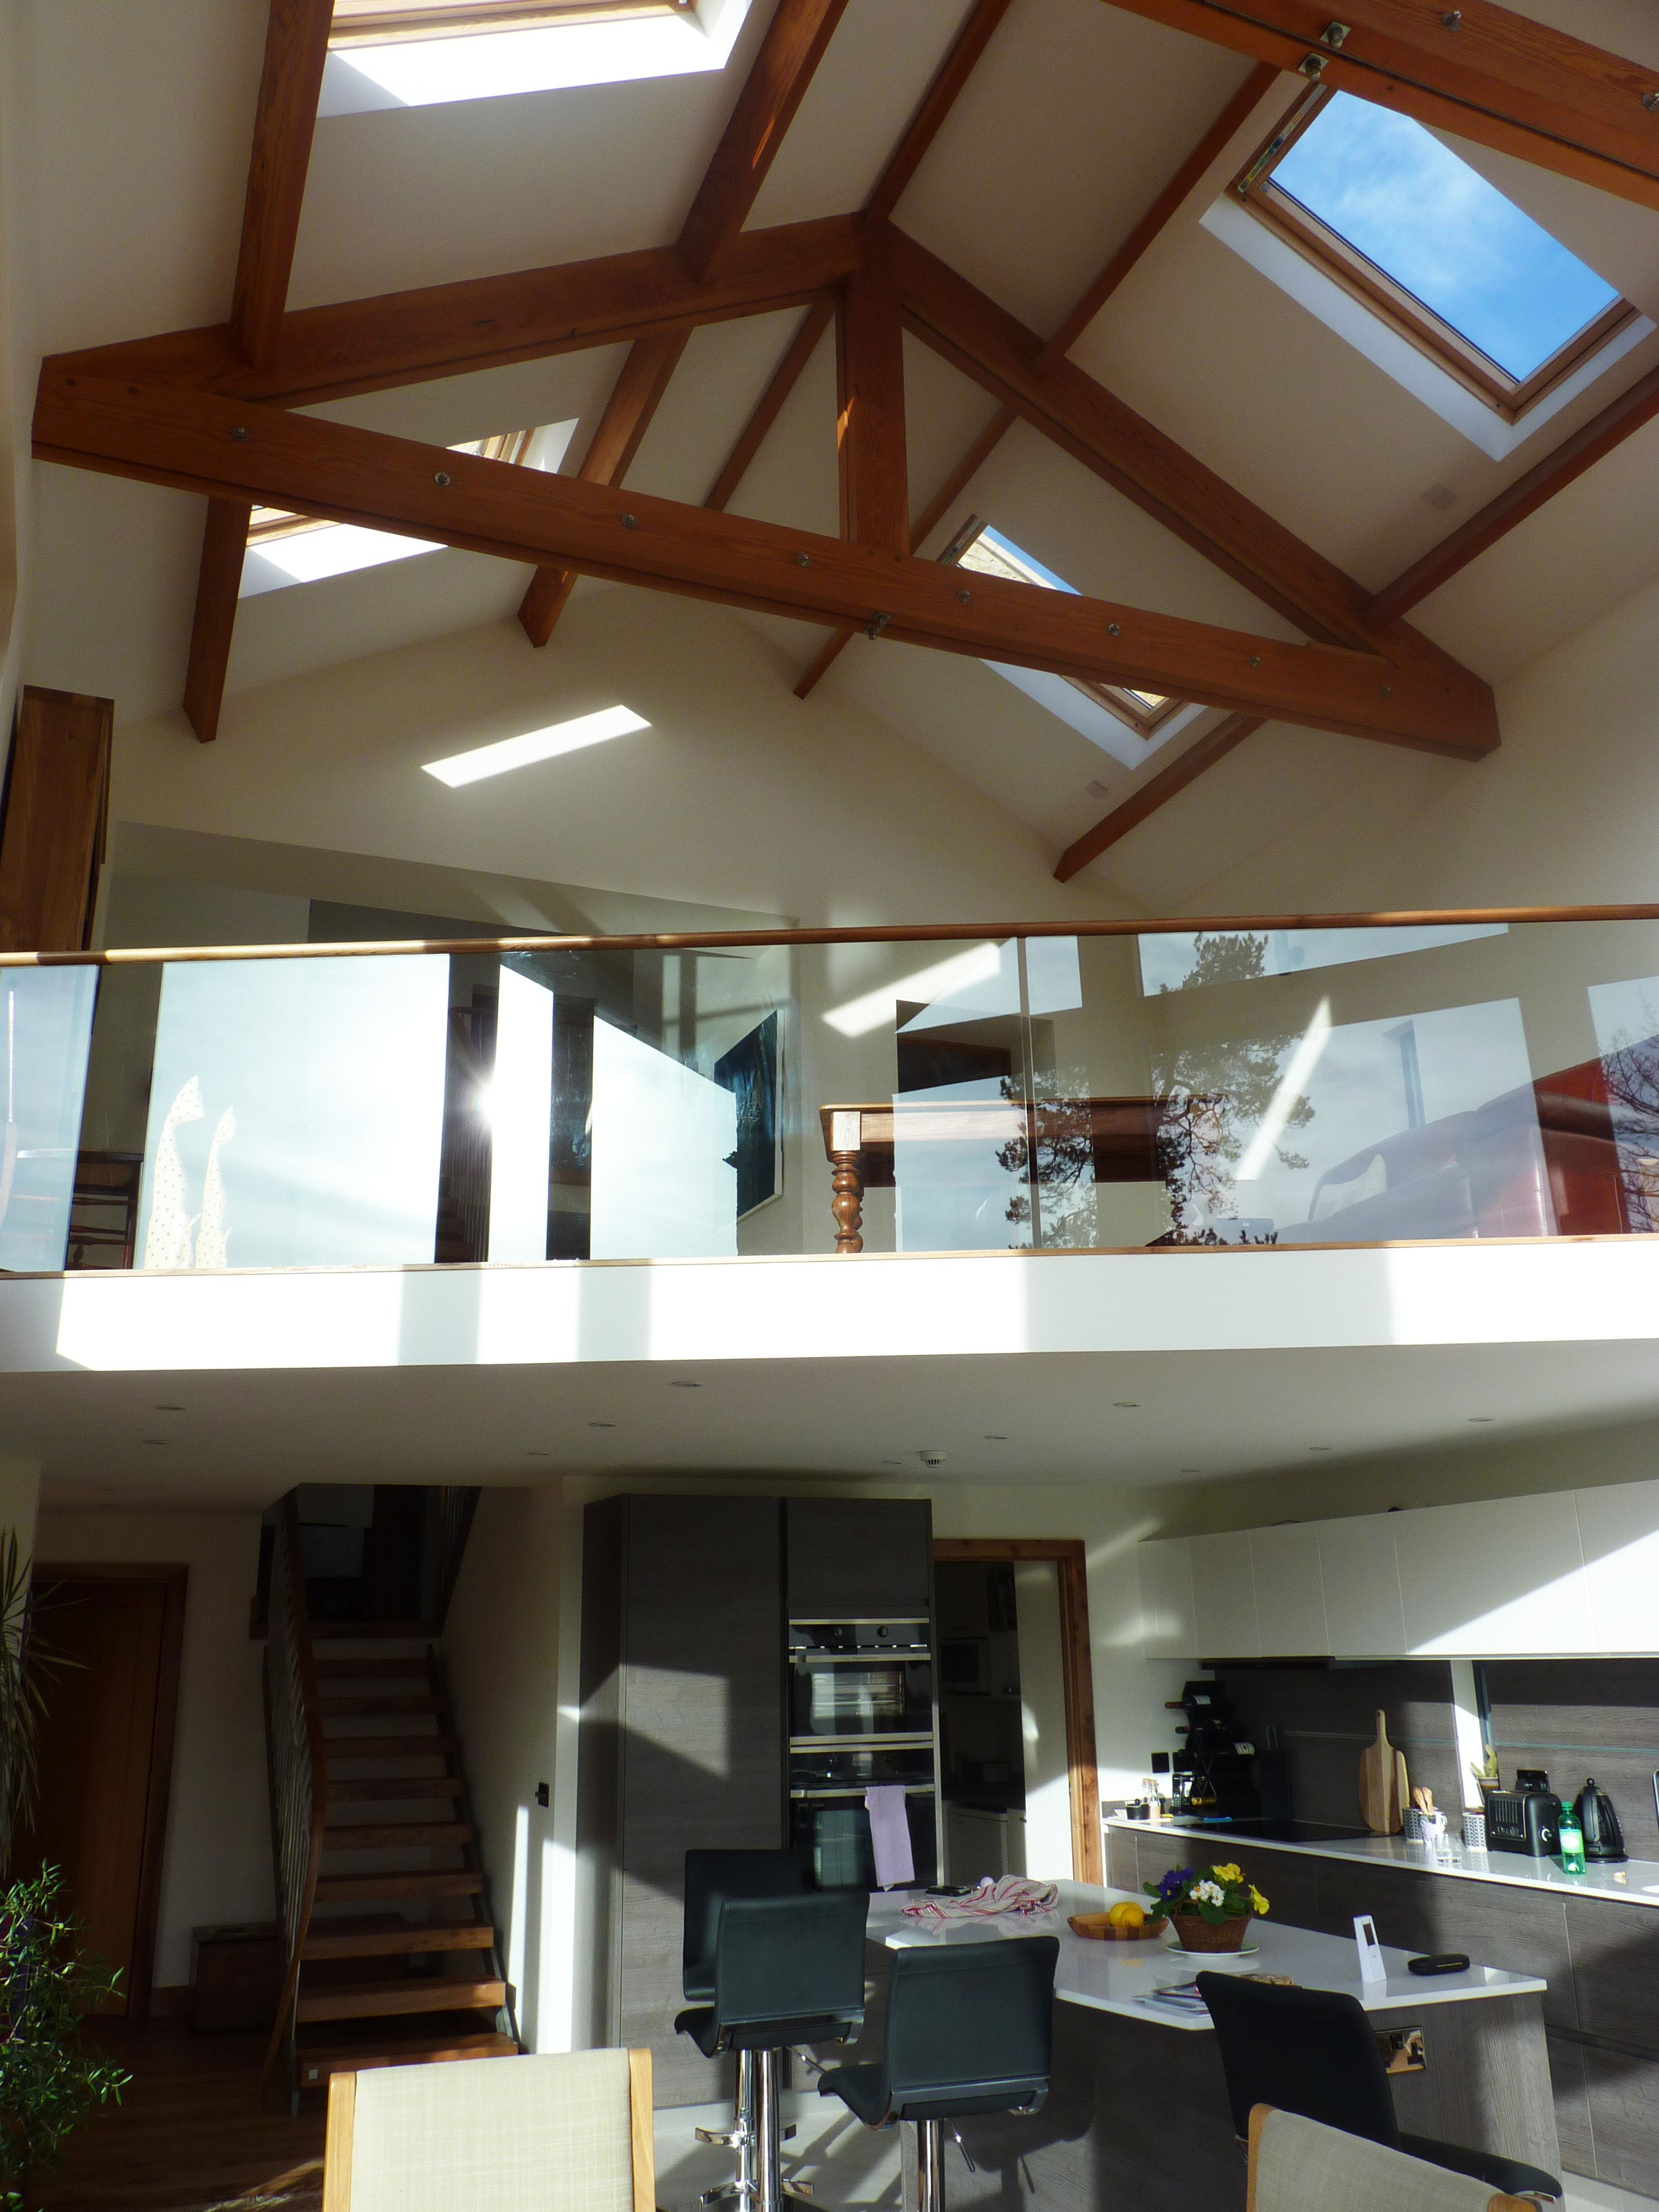 Pole Barn Open Plan Living Space, Oak, Glass, Mezzanine Floor